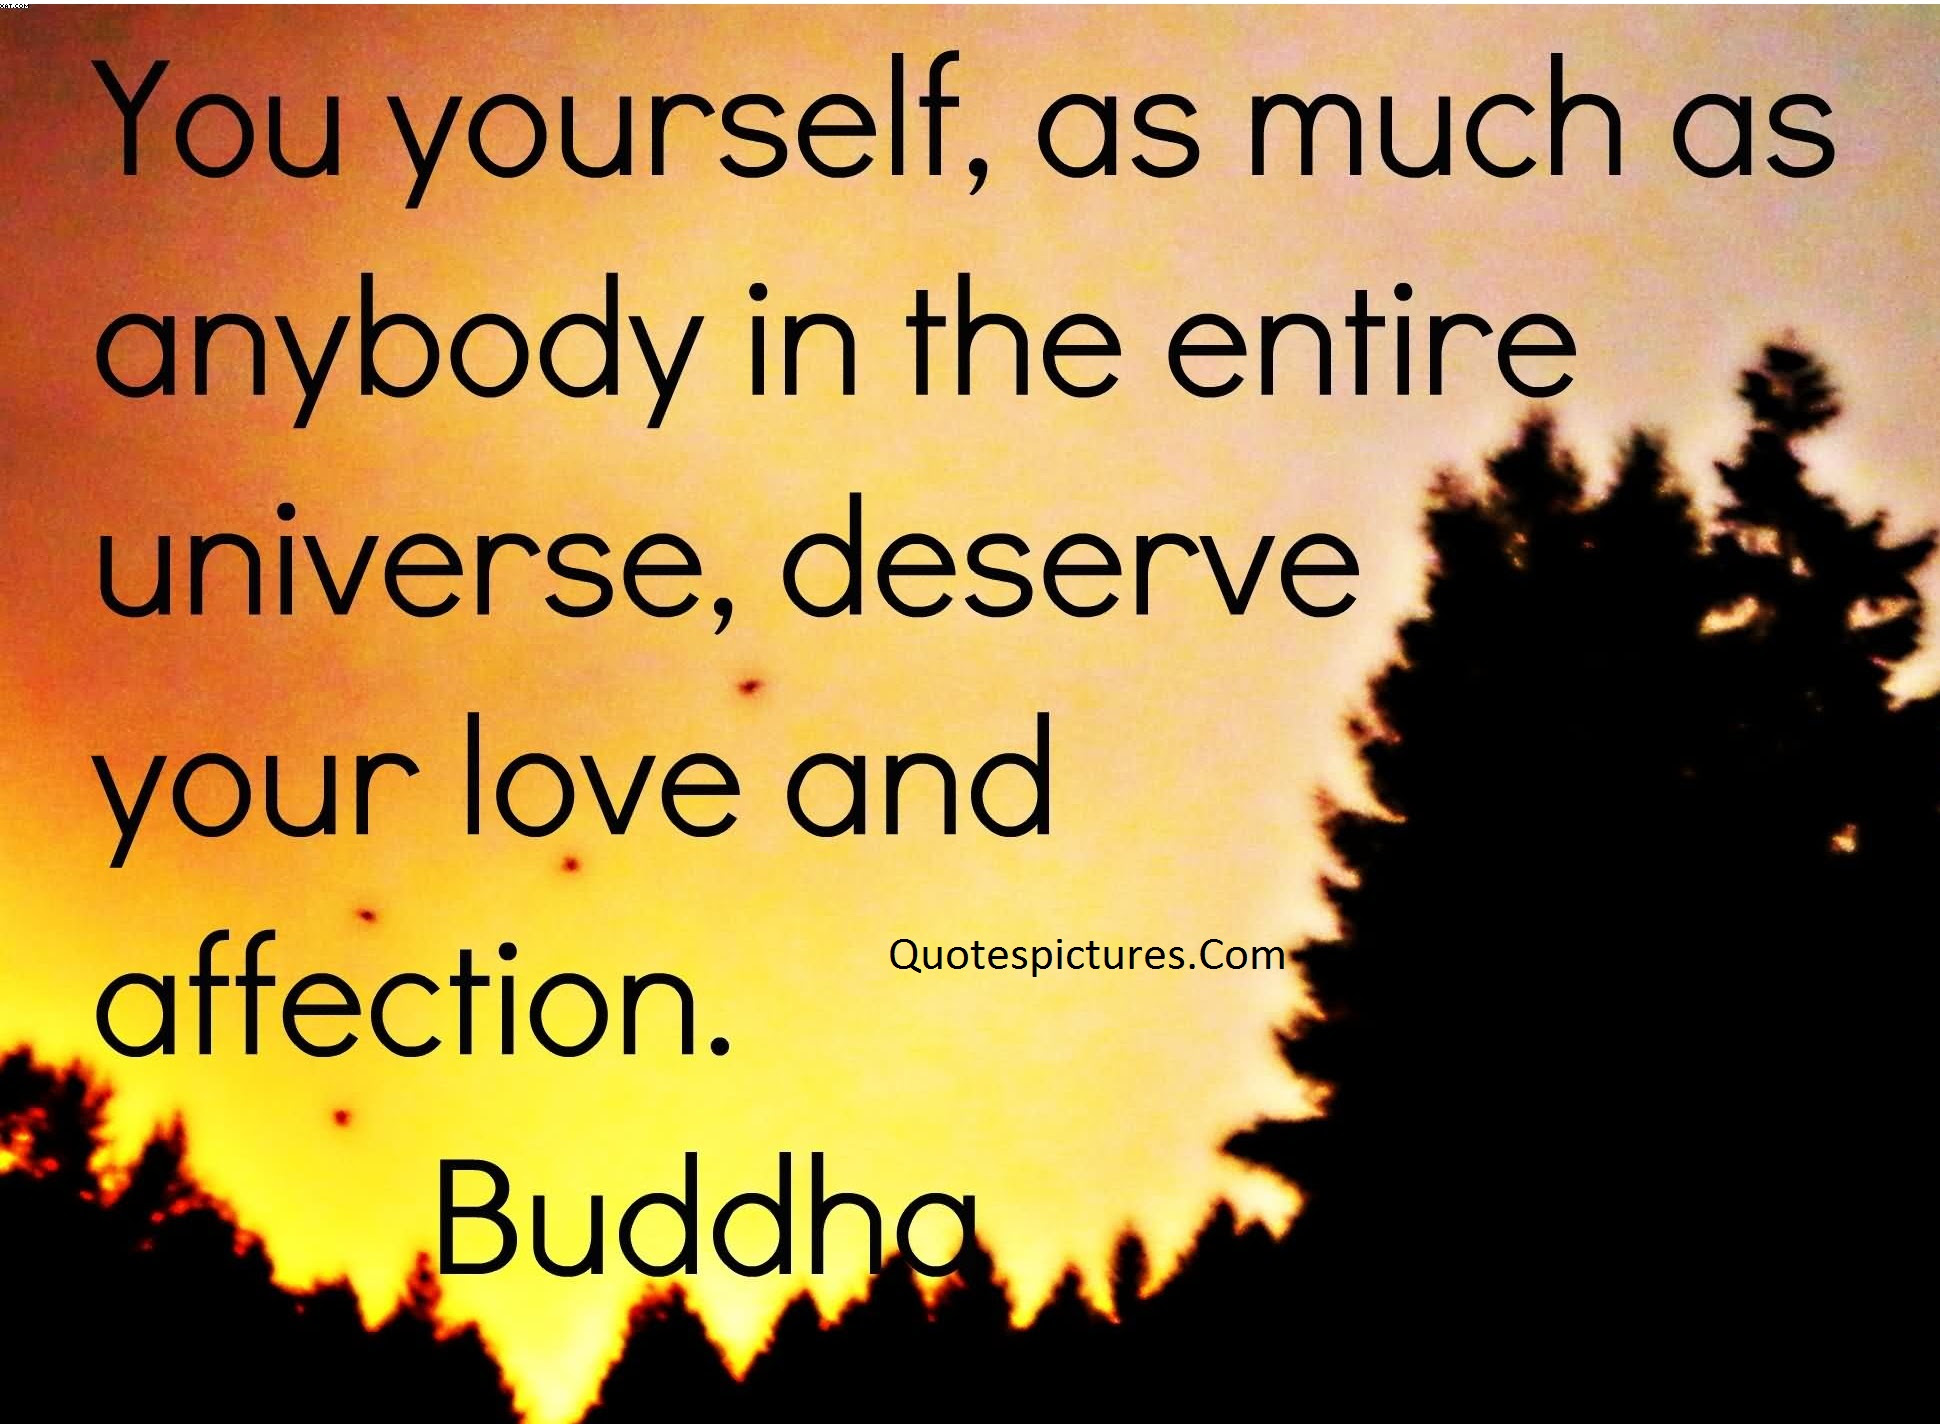 Affection Quotes The Entire Universe Deserve Your Love And